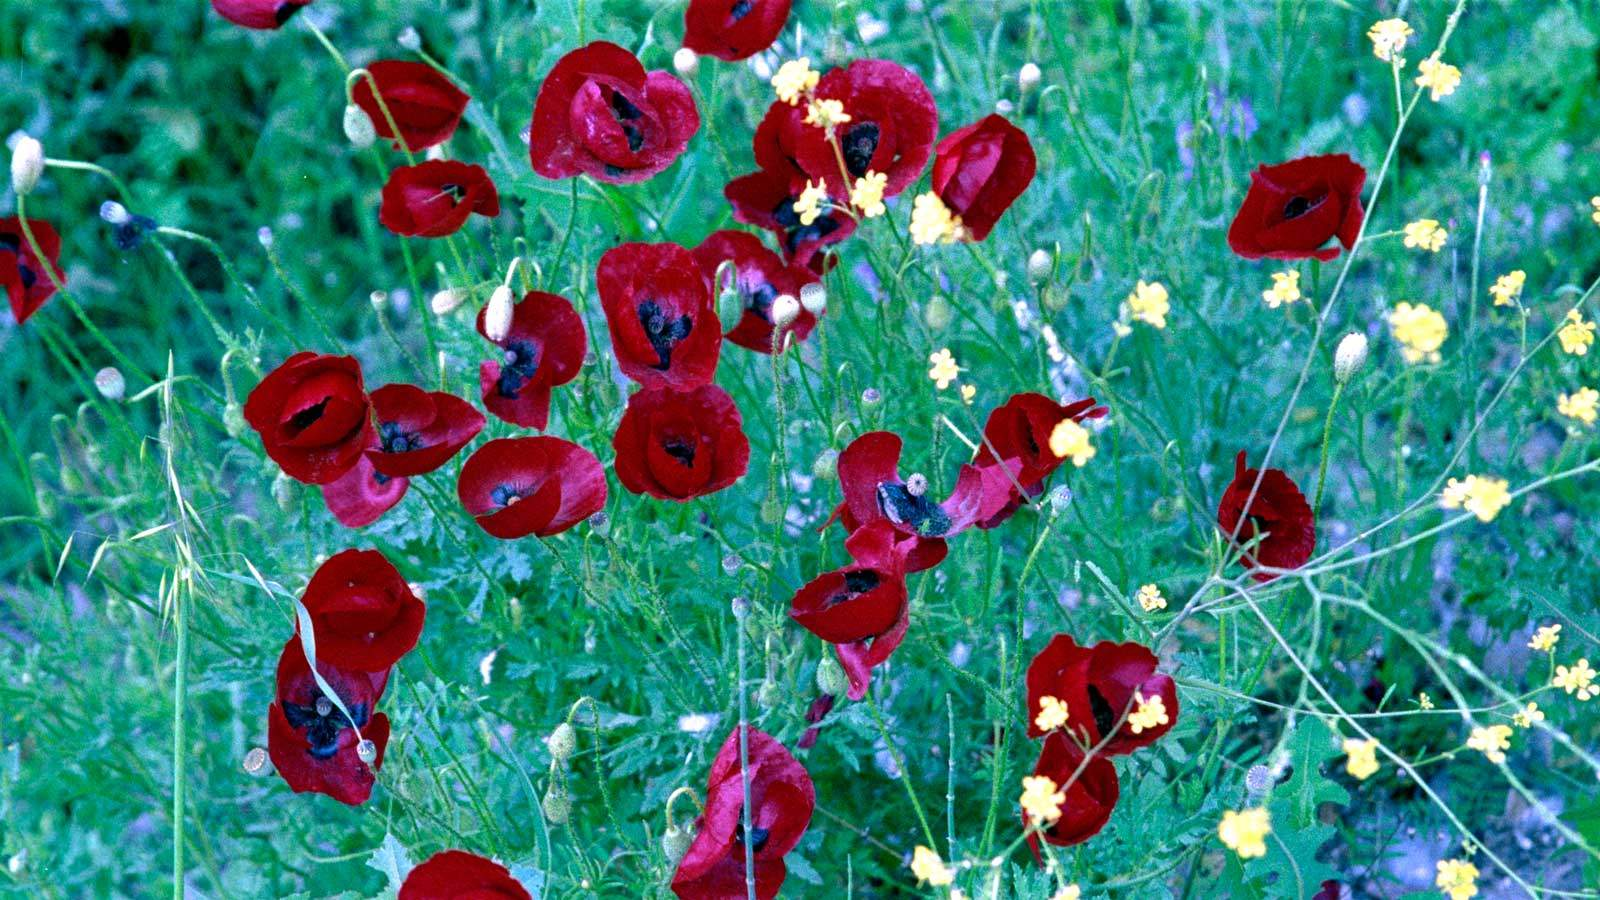 Poppies in the field - Original